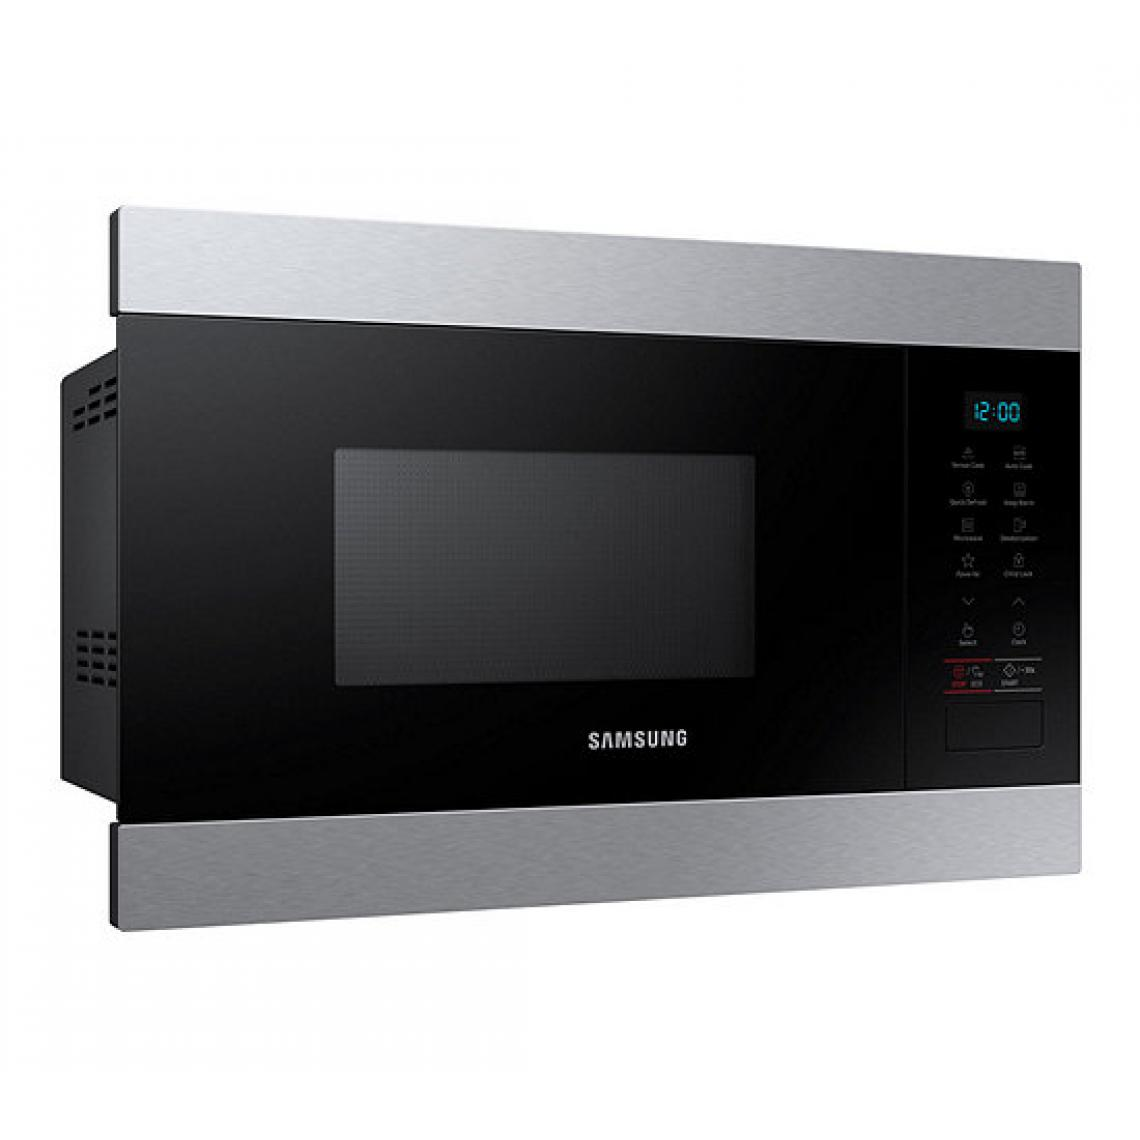 Samsung Samsung - micro-ondes encastrable MS22M8074AT